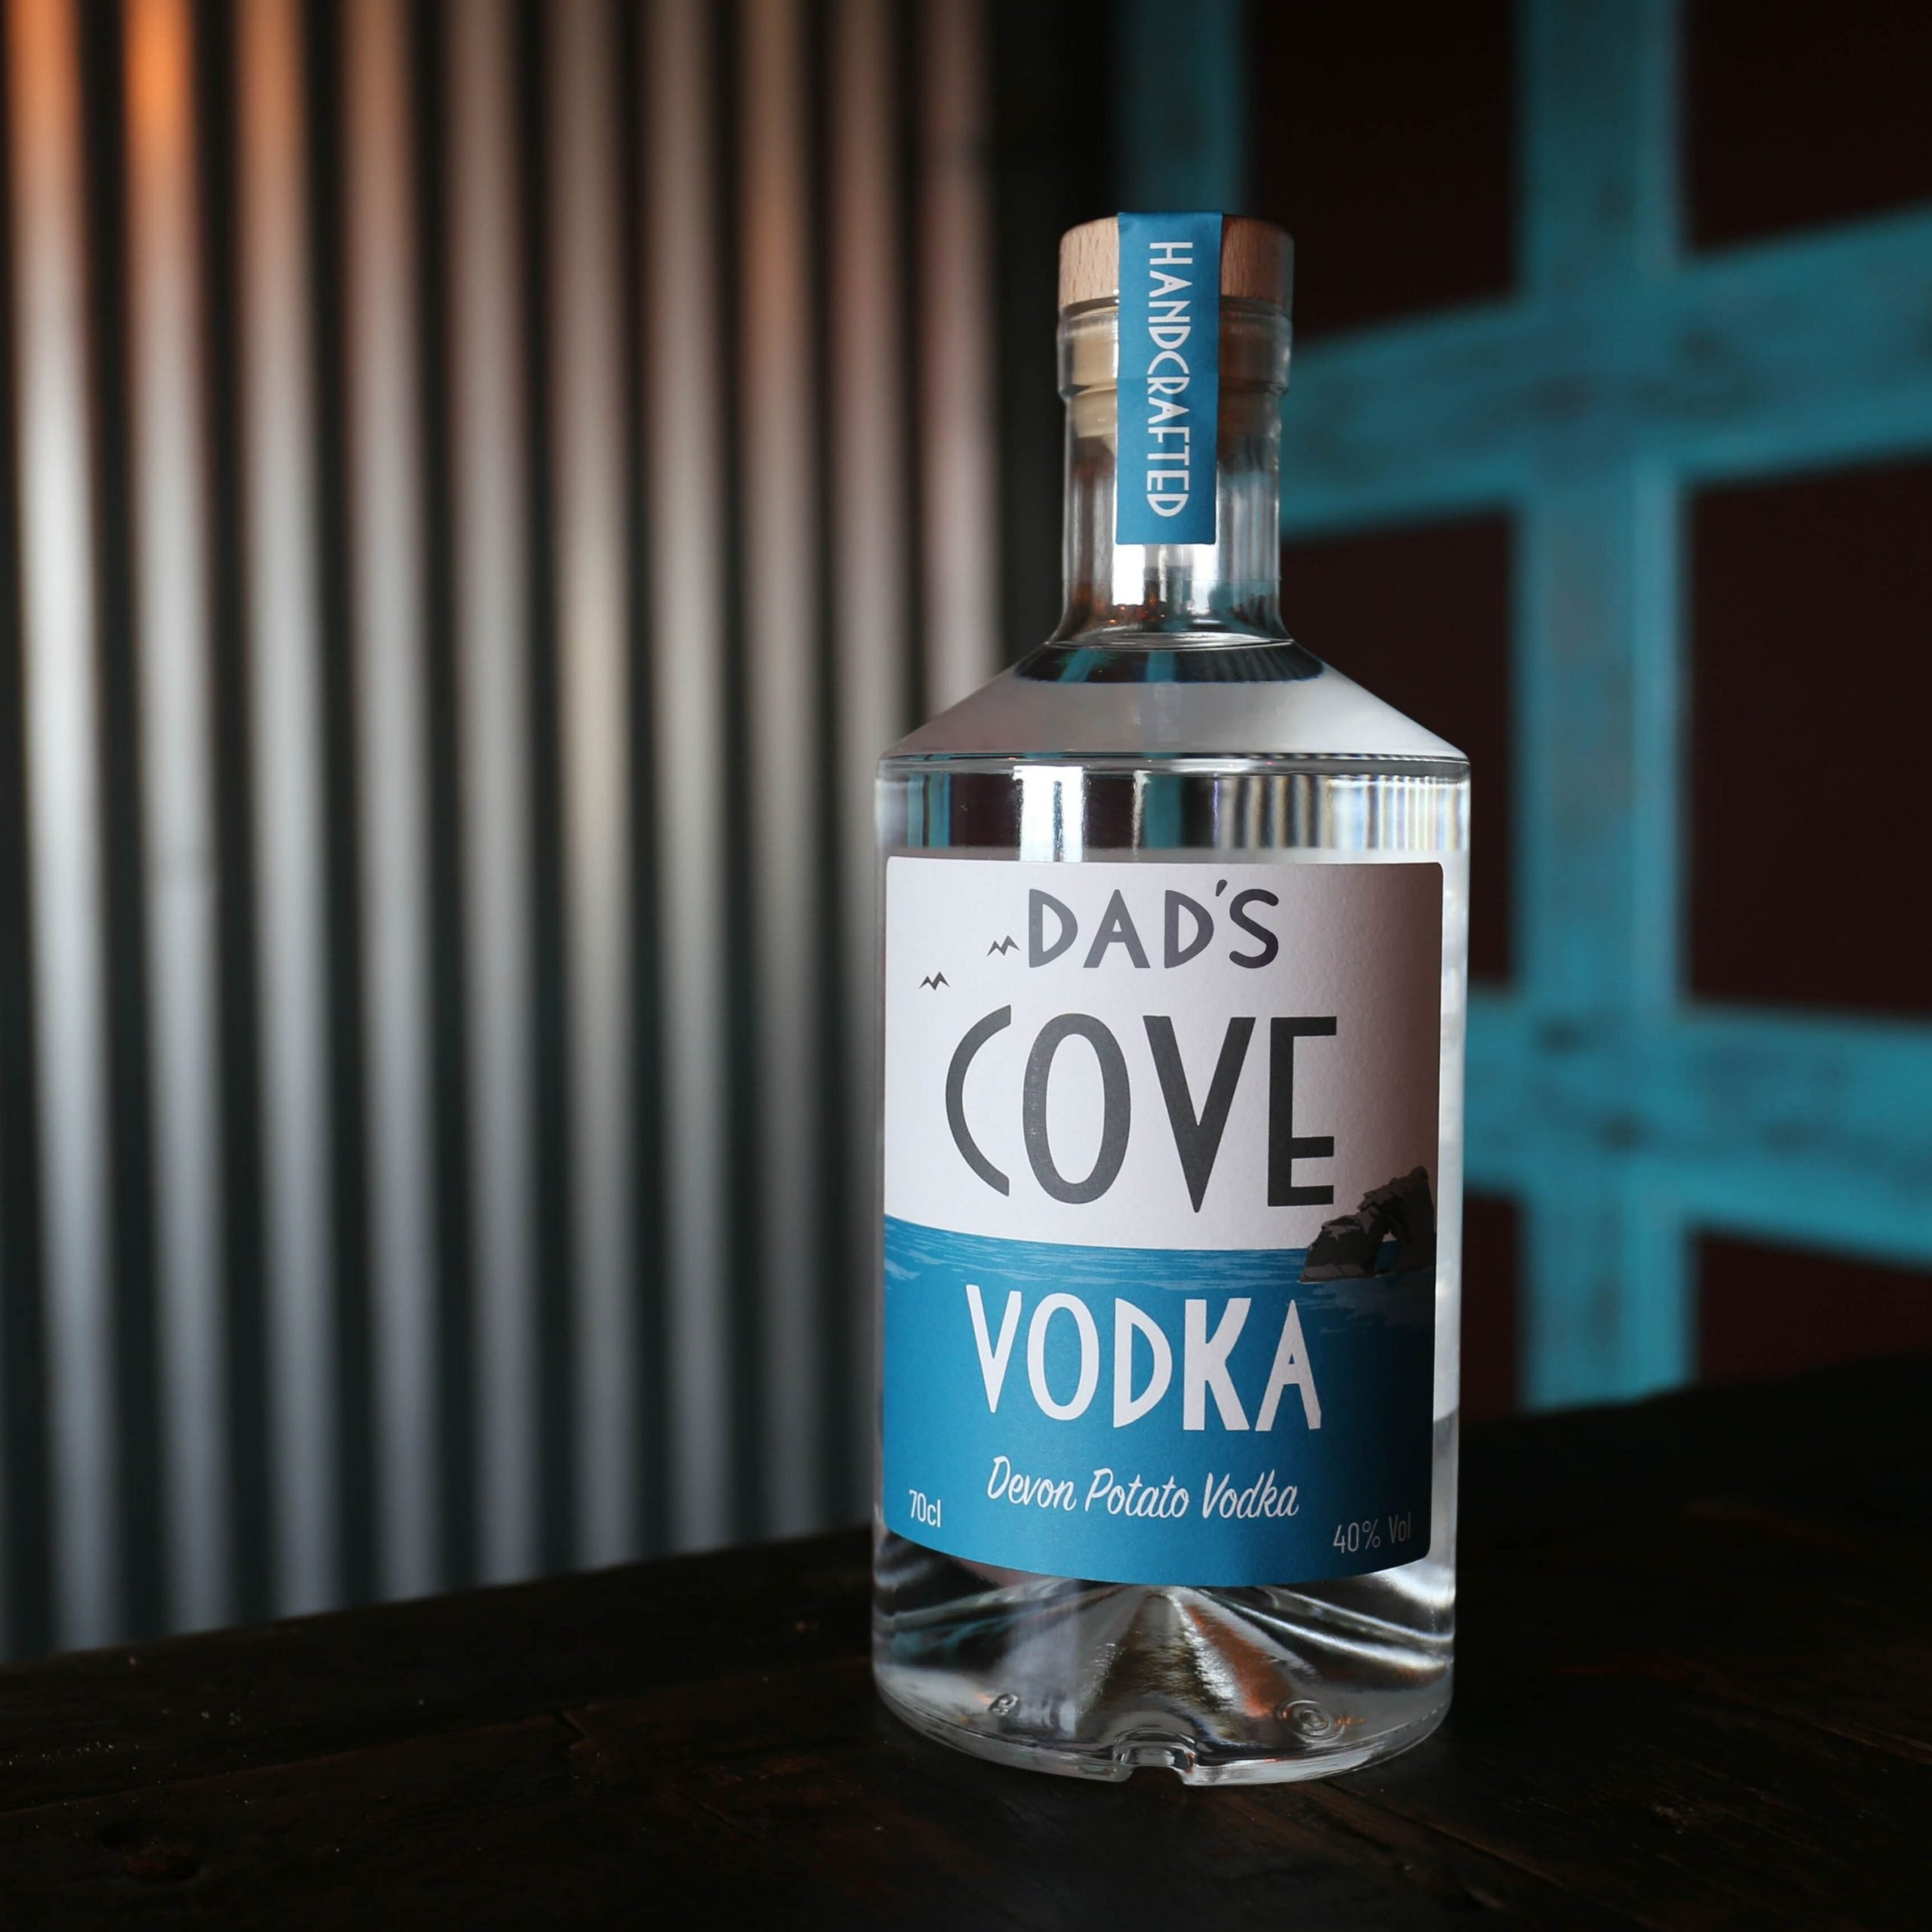 Father's Day Gift - Cove Vodka